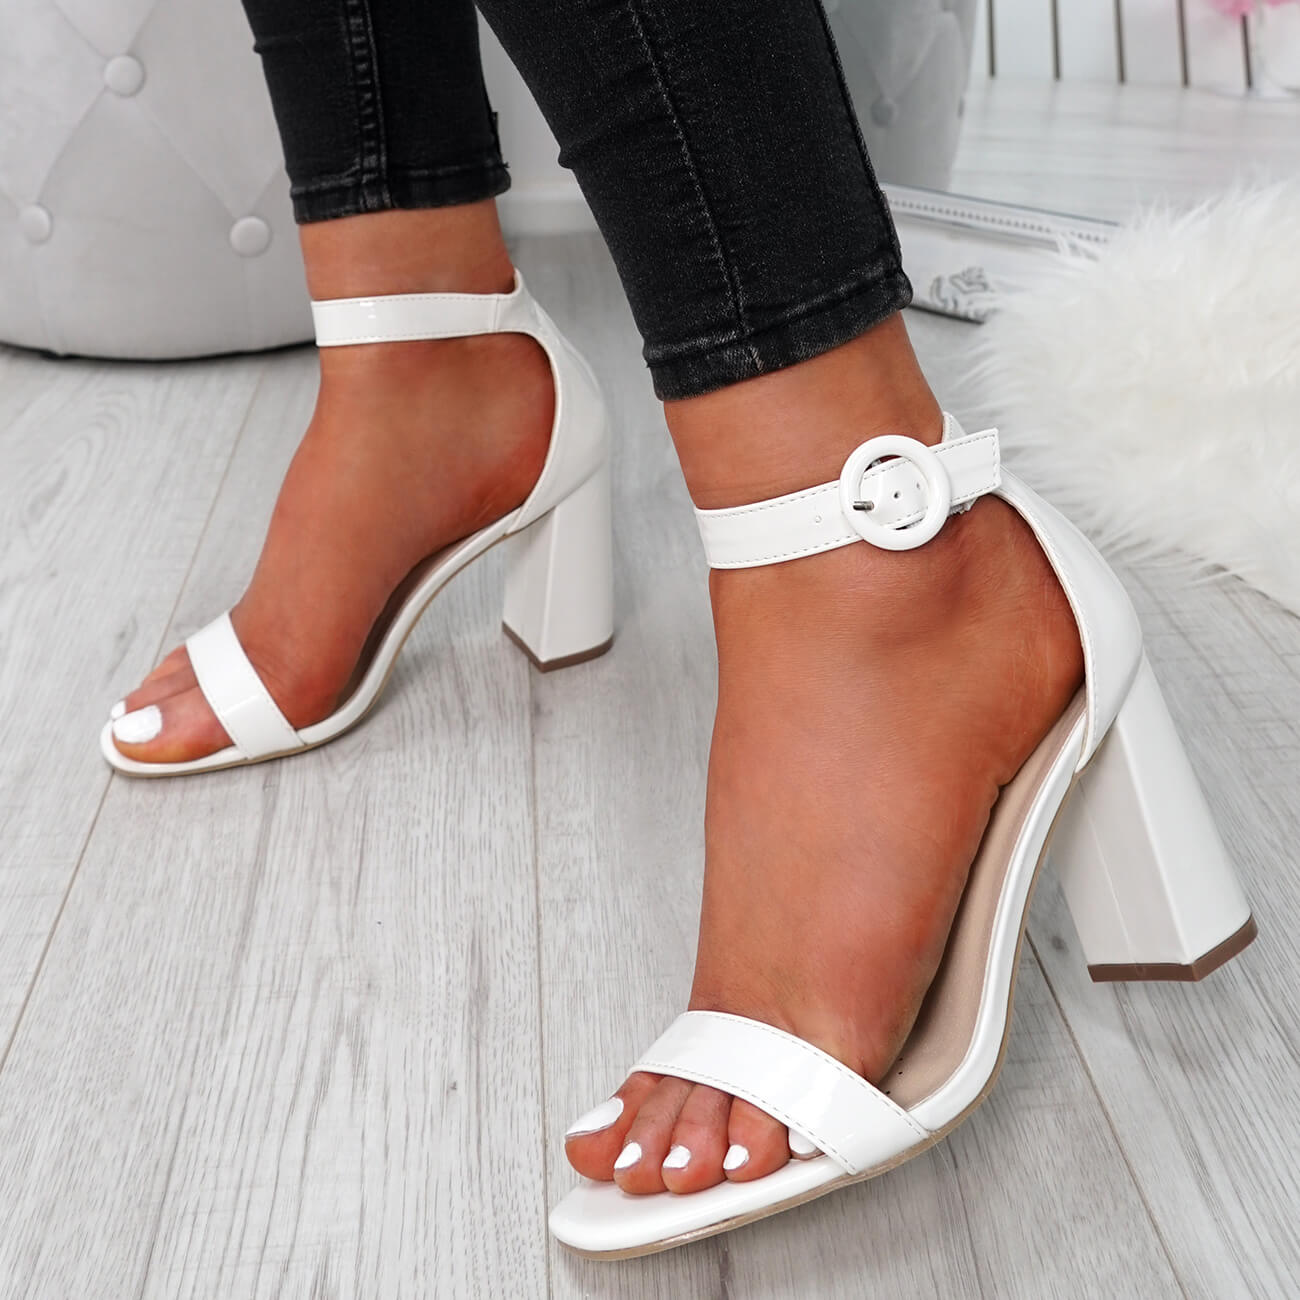 WOMENS-LADIES-ANKLE-STRAP-BLOCK-HEEL-PEEP-TOE-SANDALS-SUMMER-SHOES-SIZE-UK thumbnail 24